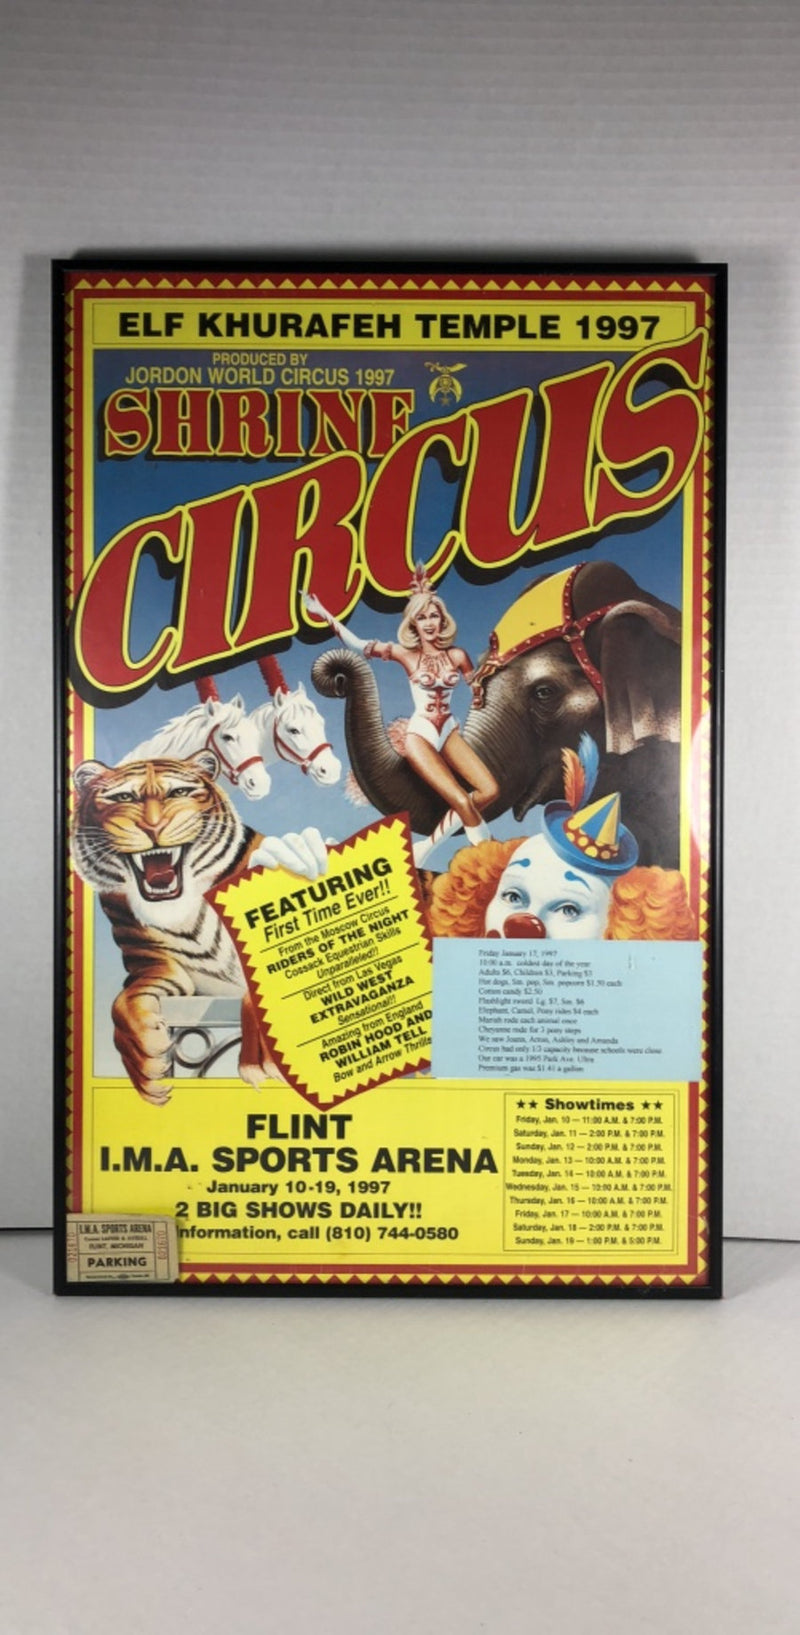 Elf Khurafeh Temple 1997 Shrine Circus Framed Poster w/ Original Ticket